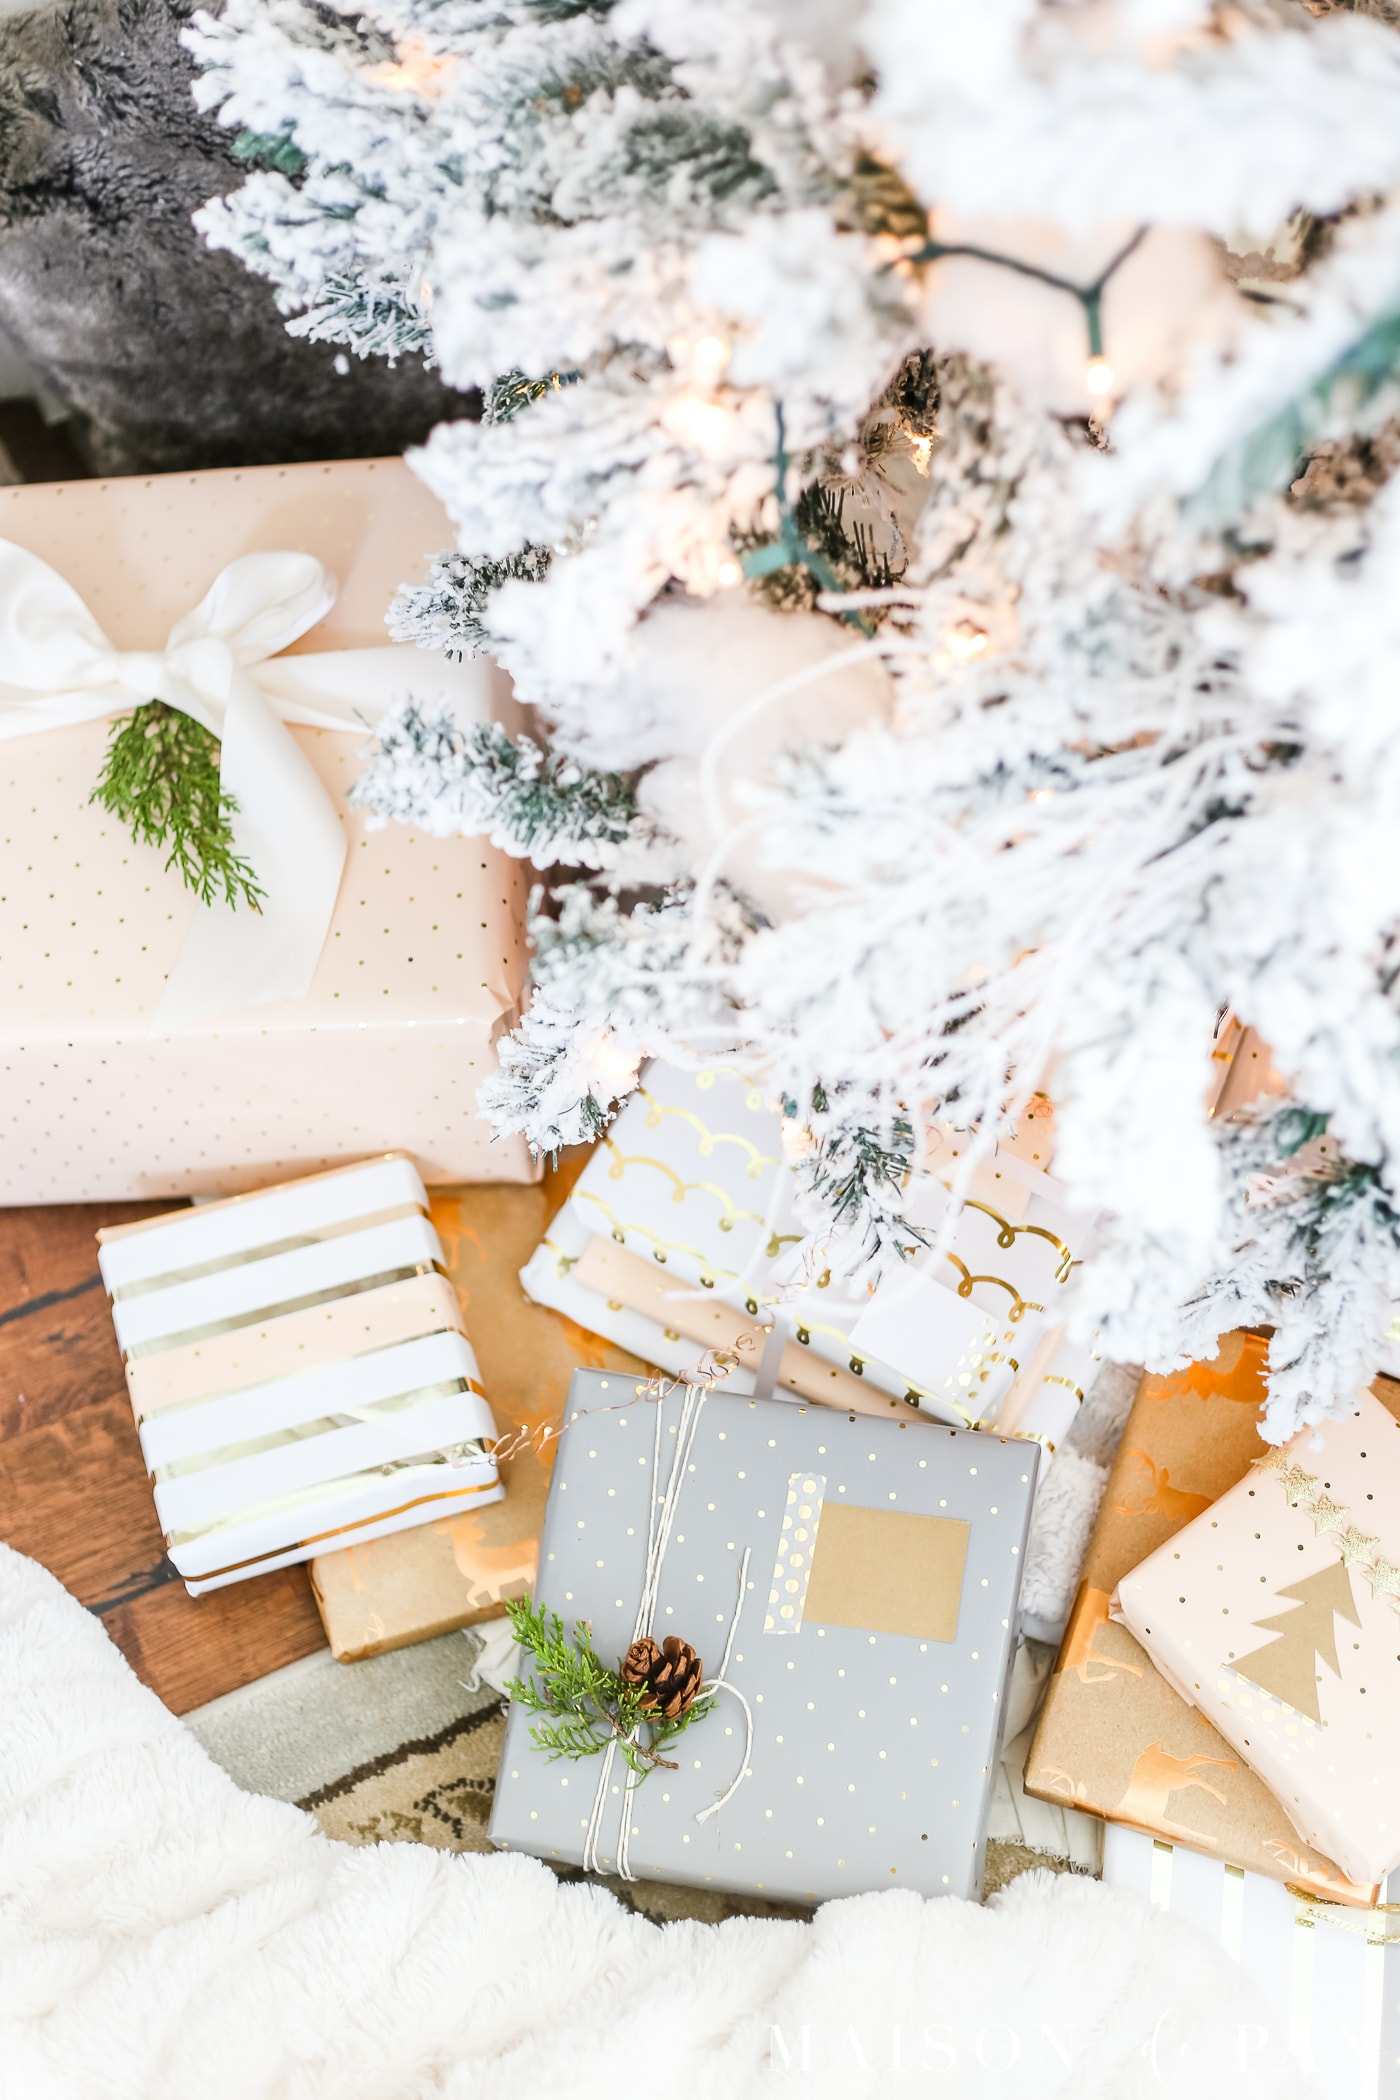 easy gift wrapping ideas: quick tips #christmaspresents #giftwrap